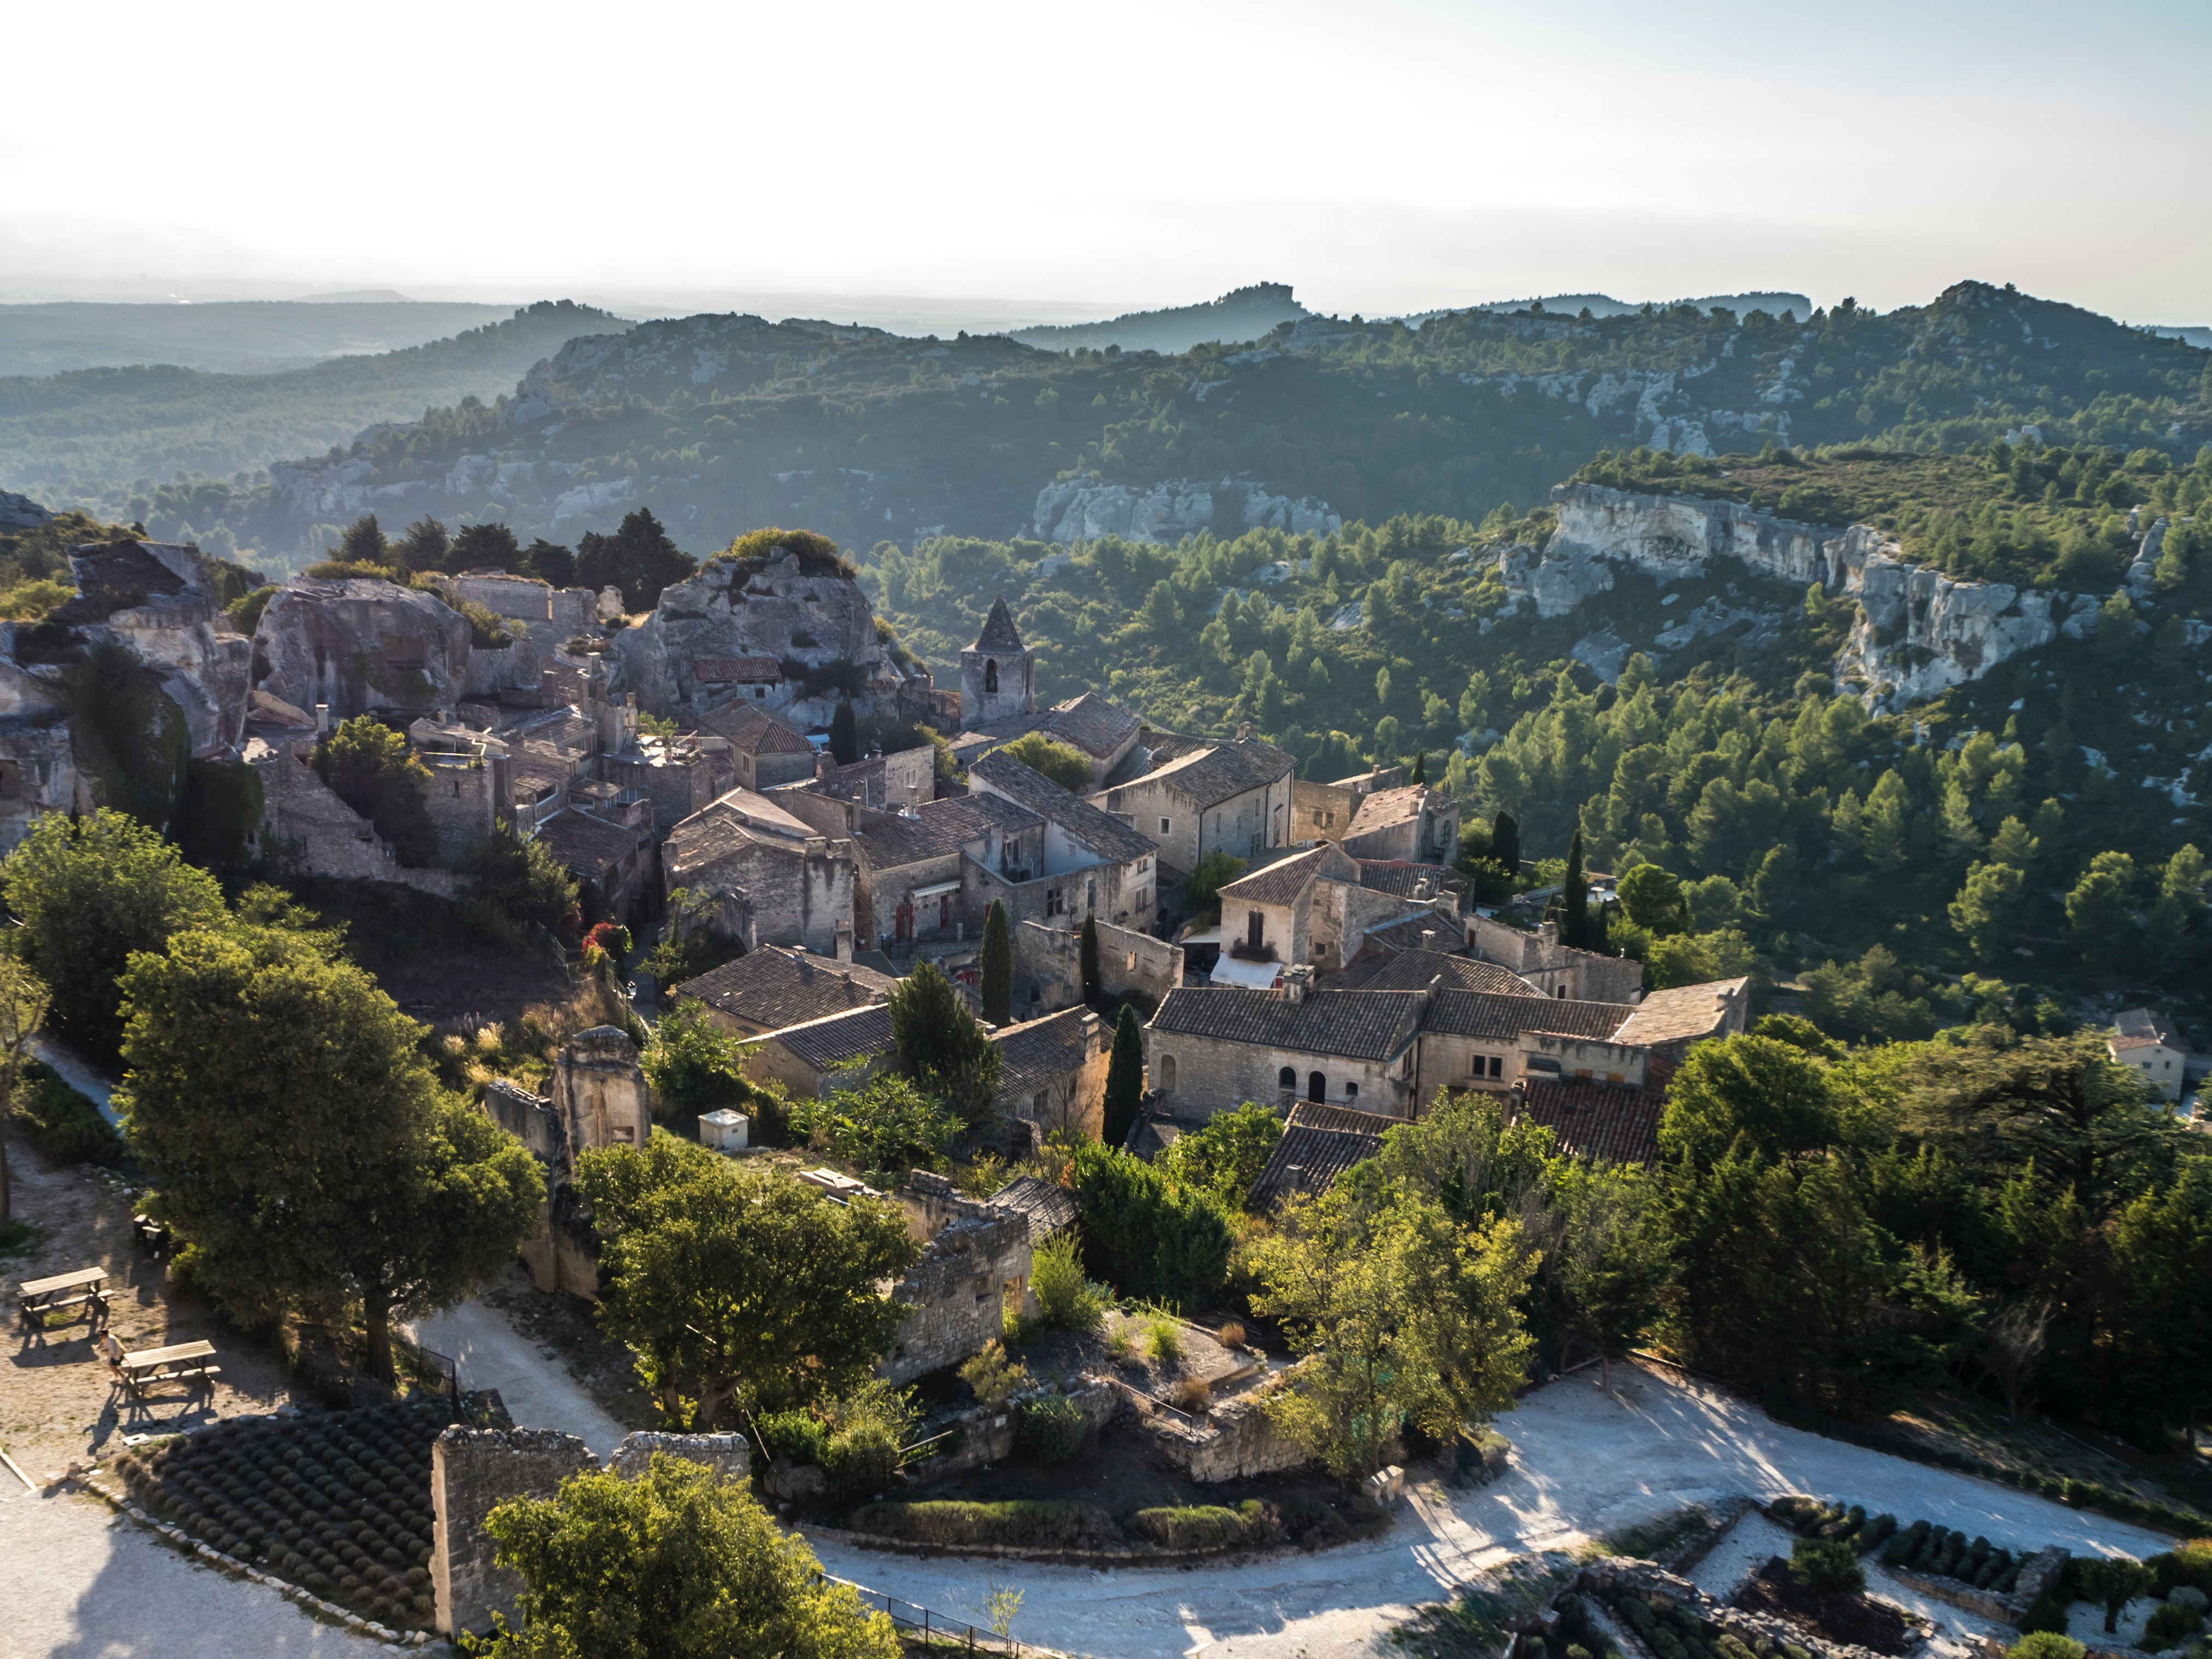 An old French village in the hilly landscapes of Provence